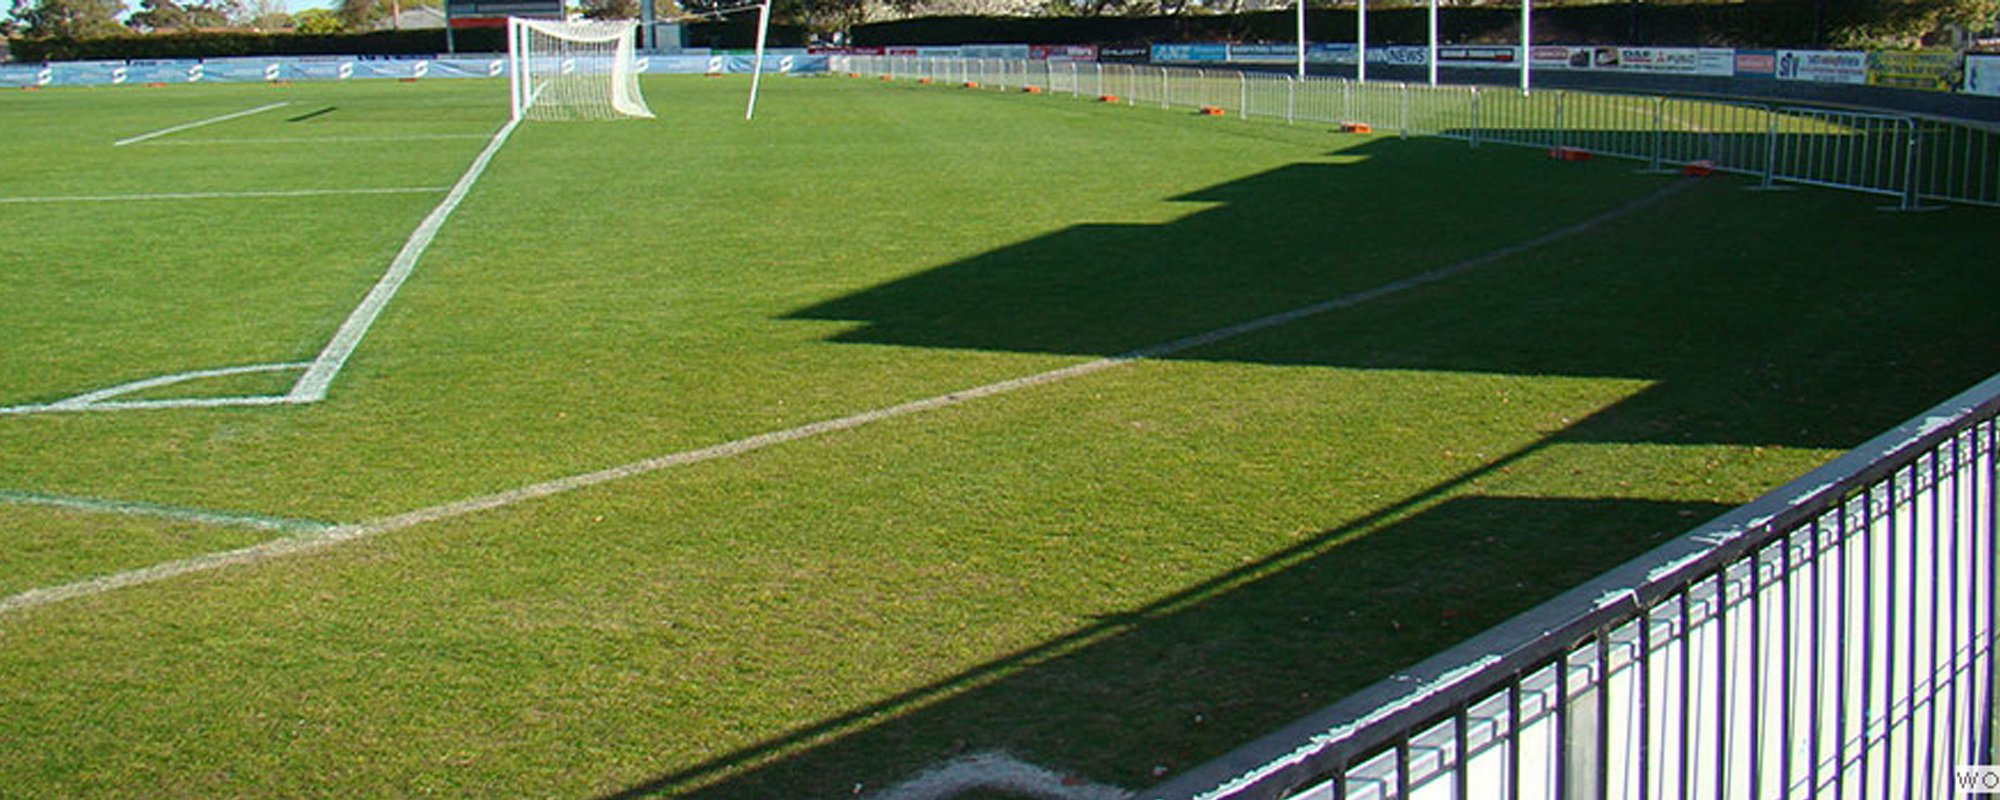 View of temporary fencing in the playing field